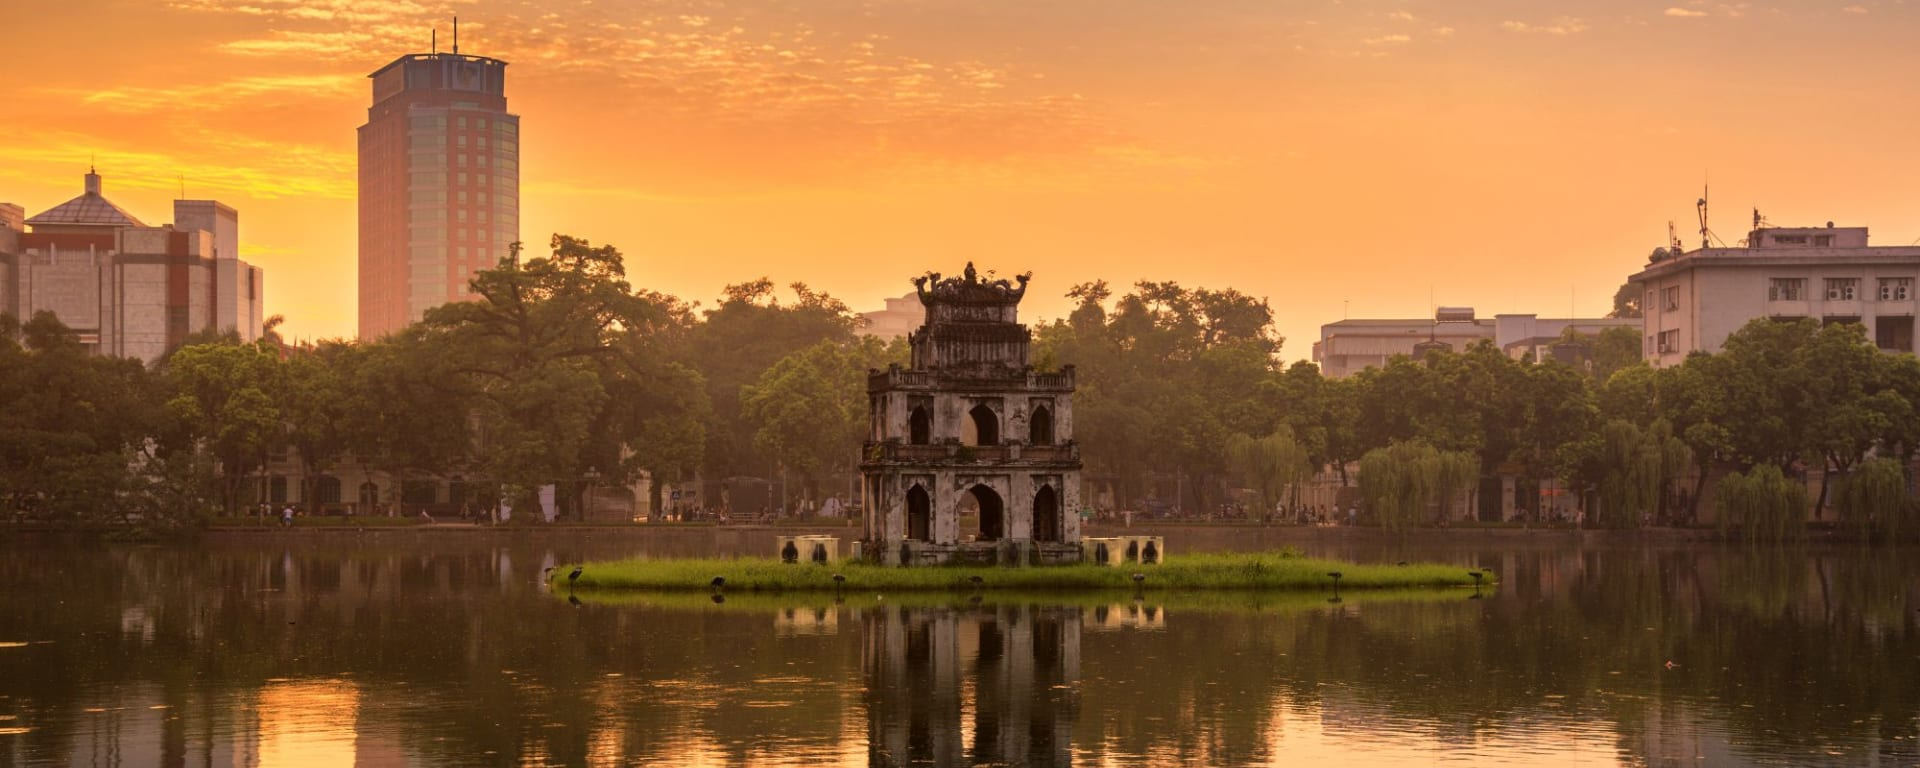 Glanzlichter Vietnam - von Saigon nach Hanoi: Hanoi Hoan Kiem Lake (Lake of the Returned Sword) and the Turtle Tower